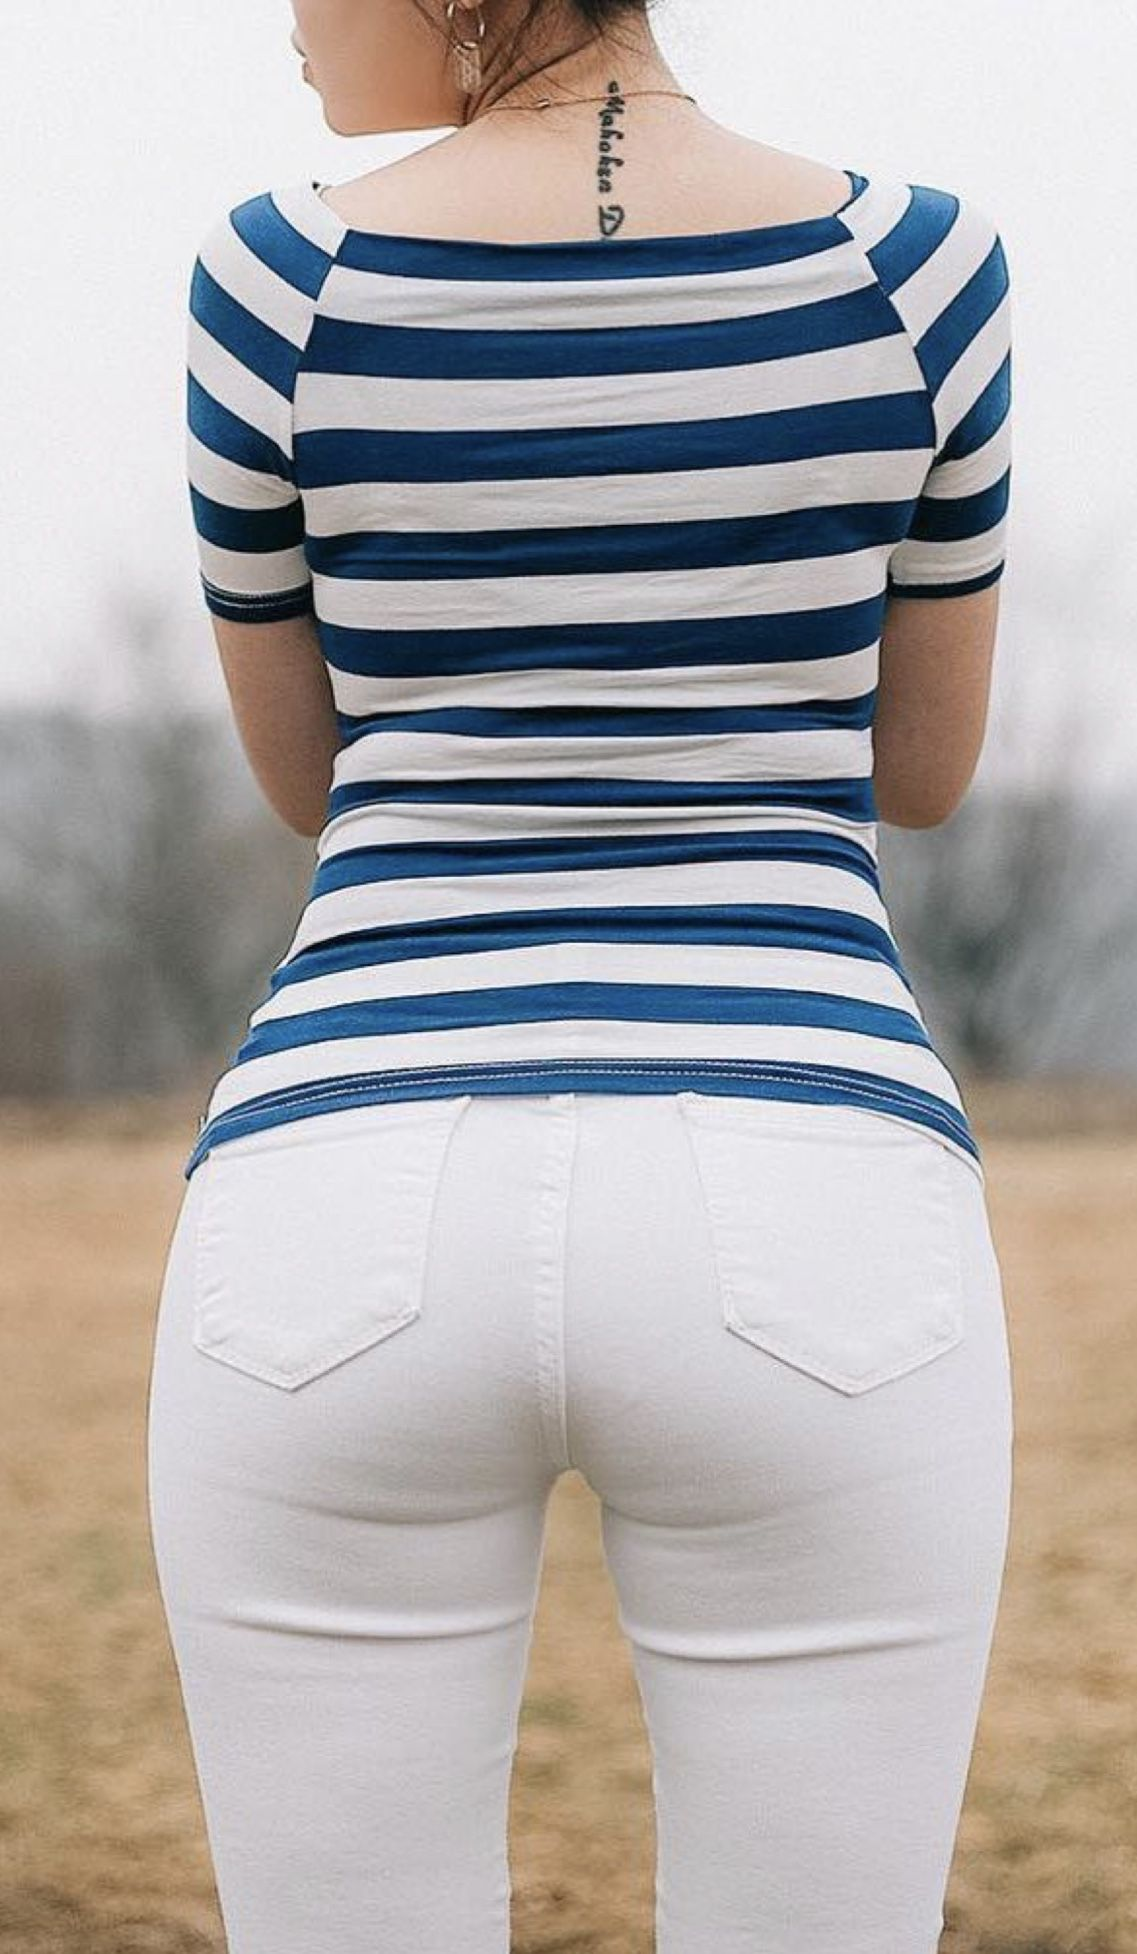 Babe in tight jeans - cover